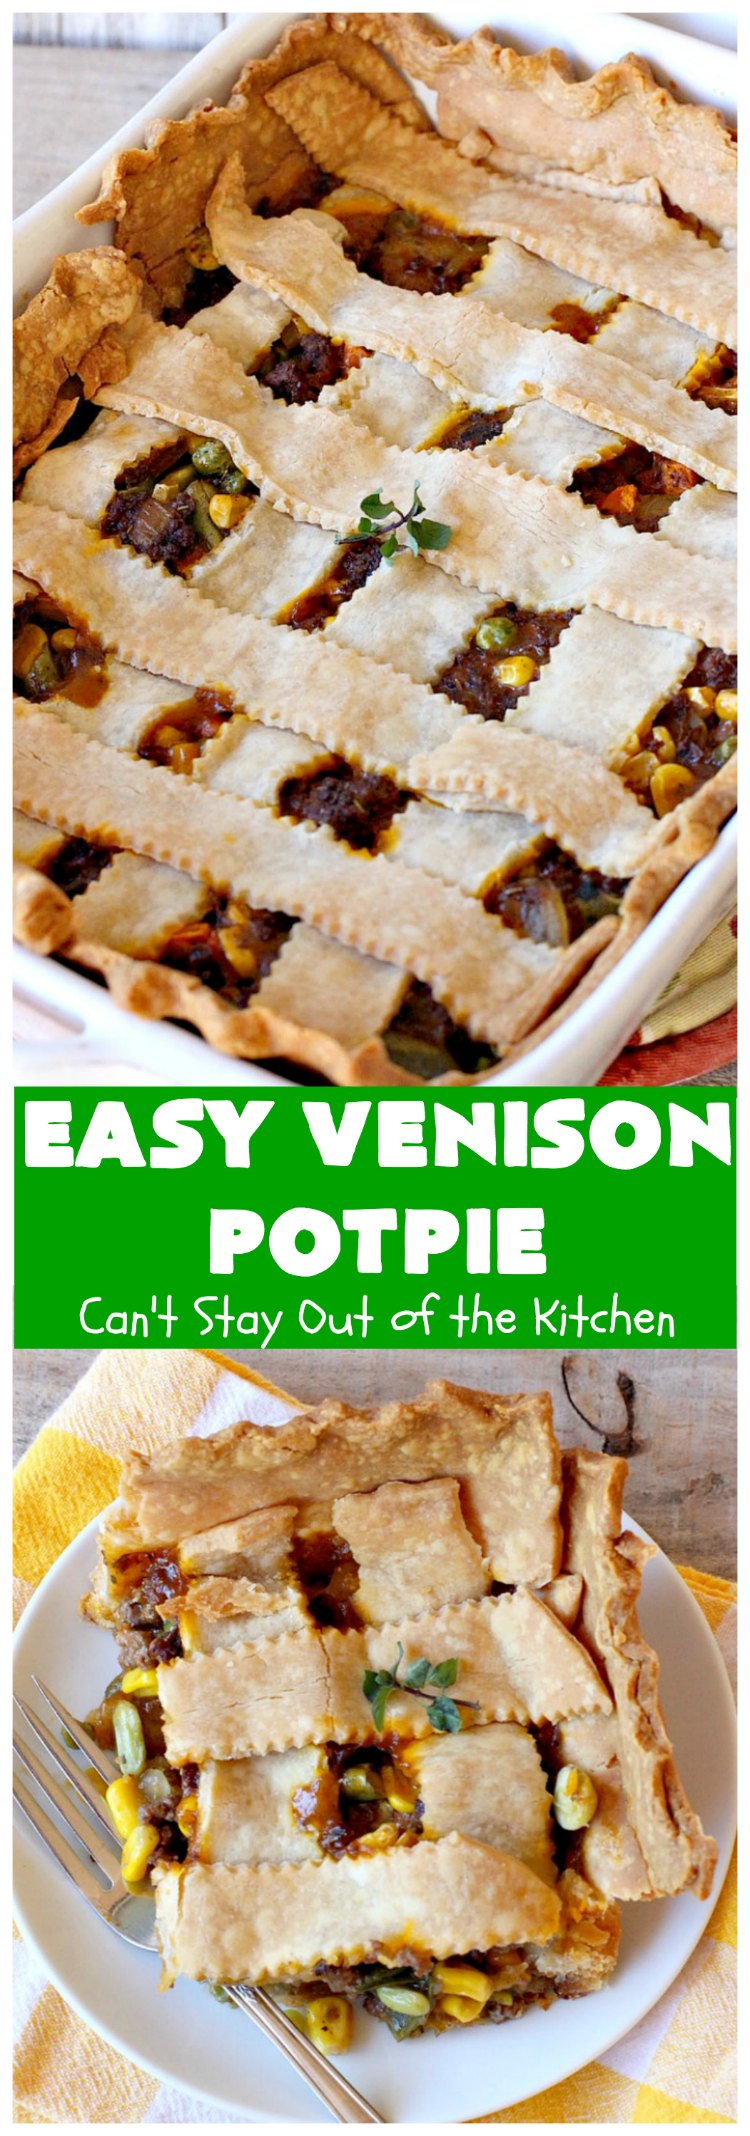 Easy Venison Potpie | Can't Stay Out of the Kitchen | this easy #Potpie #recipe will knock your socks off! If you have family members that hunt, this is a fantastic way to use up ground or chunk #venison. #DeerMeat #EasyVenisonPotPie